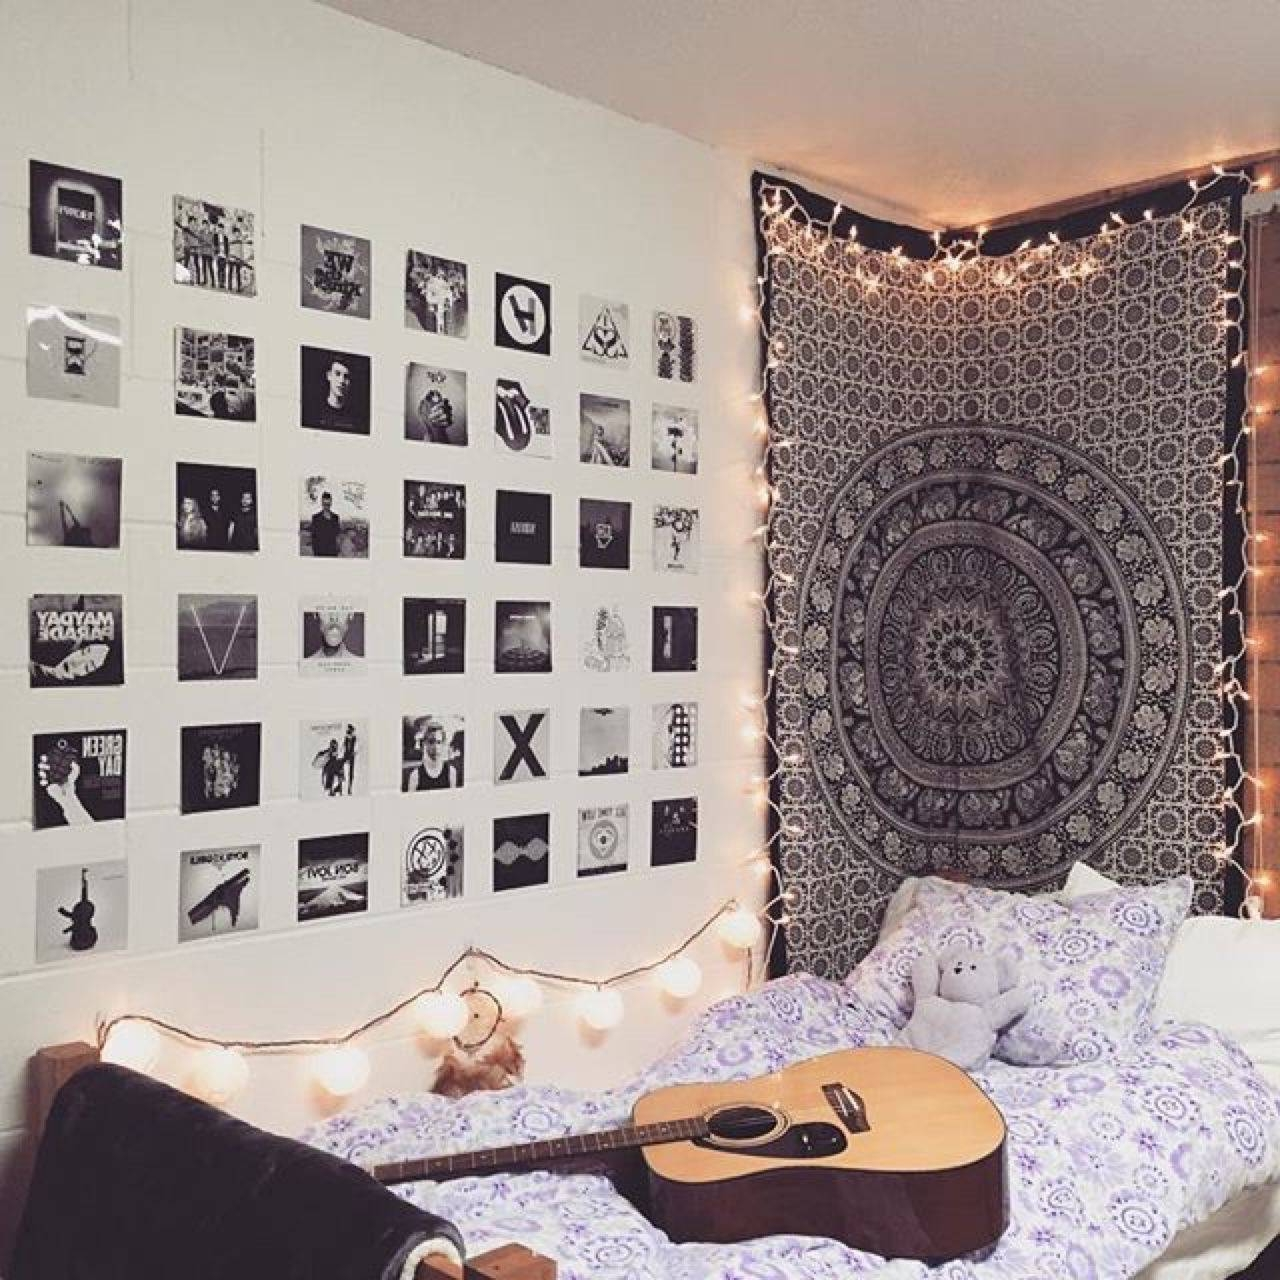 Tumblr Wall Art In Fashionable Tumblr Bedroom Decor Awesome 32 Awesome Wall Art Tumblr (View 14 of 20)